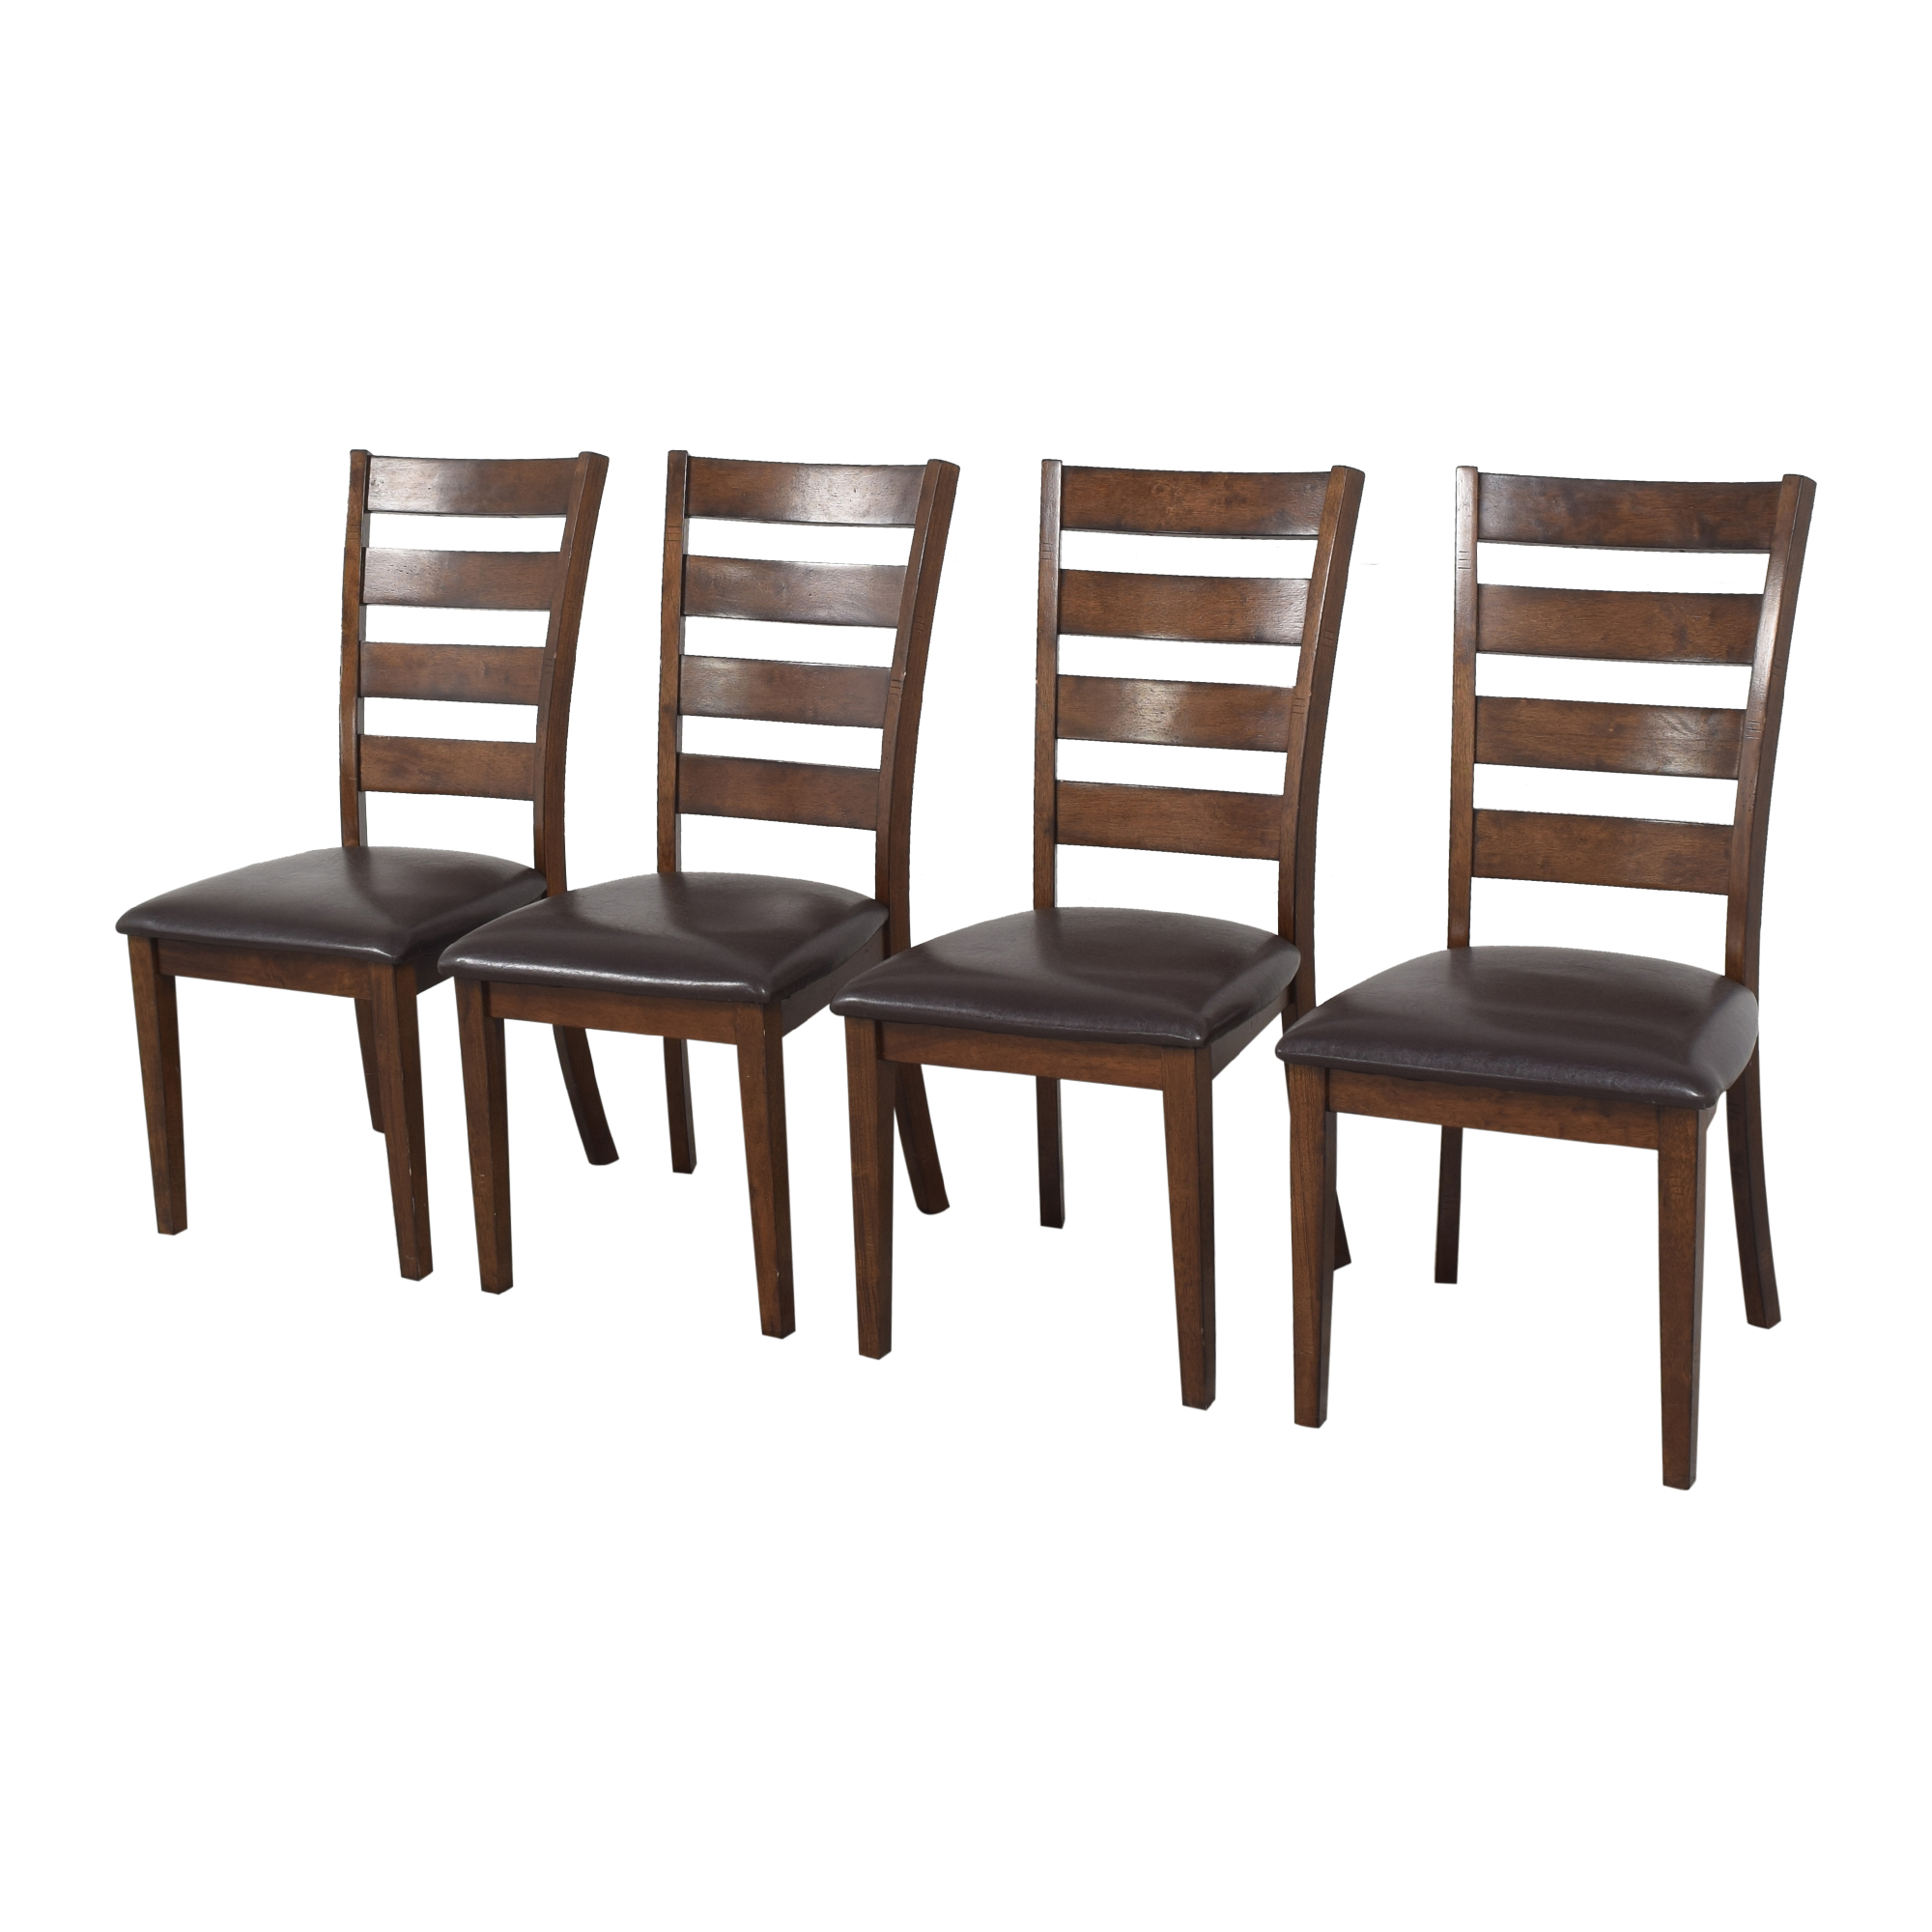 Raymour & Flanigan Raymour & Flanigan Ladder Back Dining Chairs ct